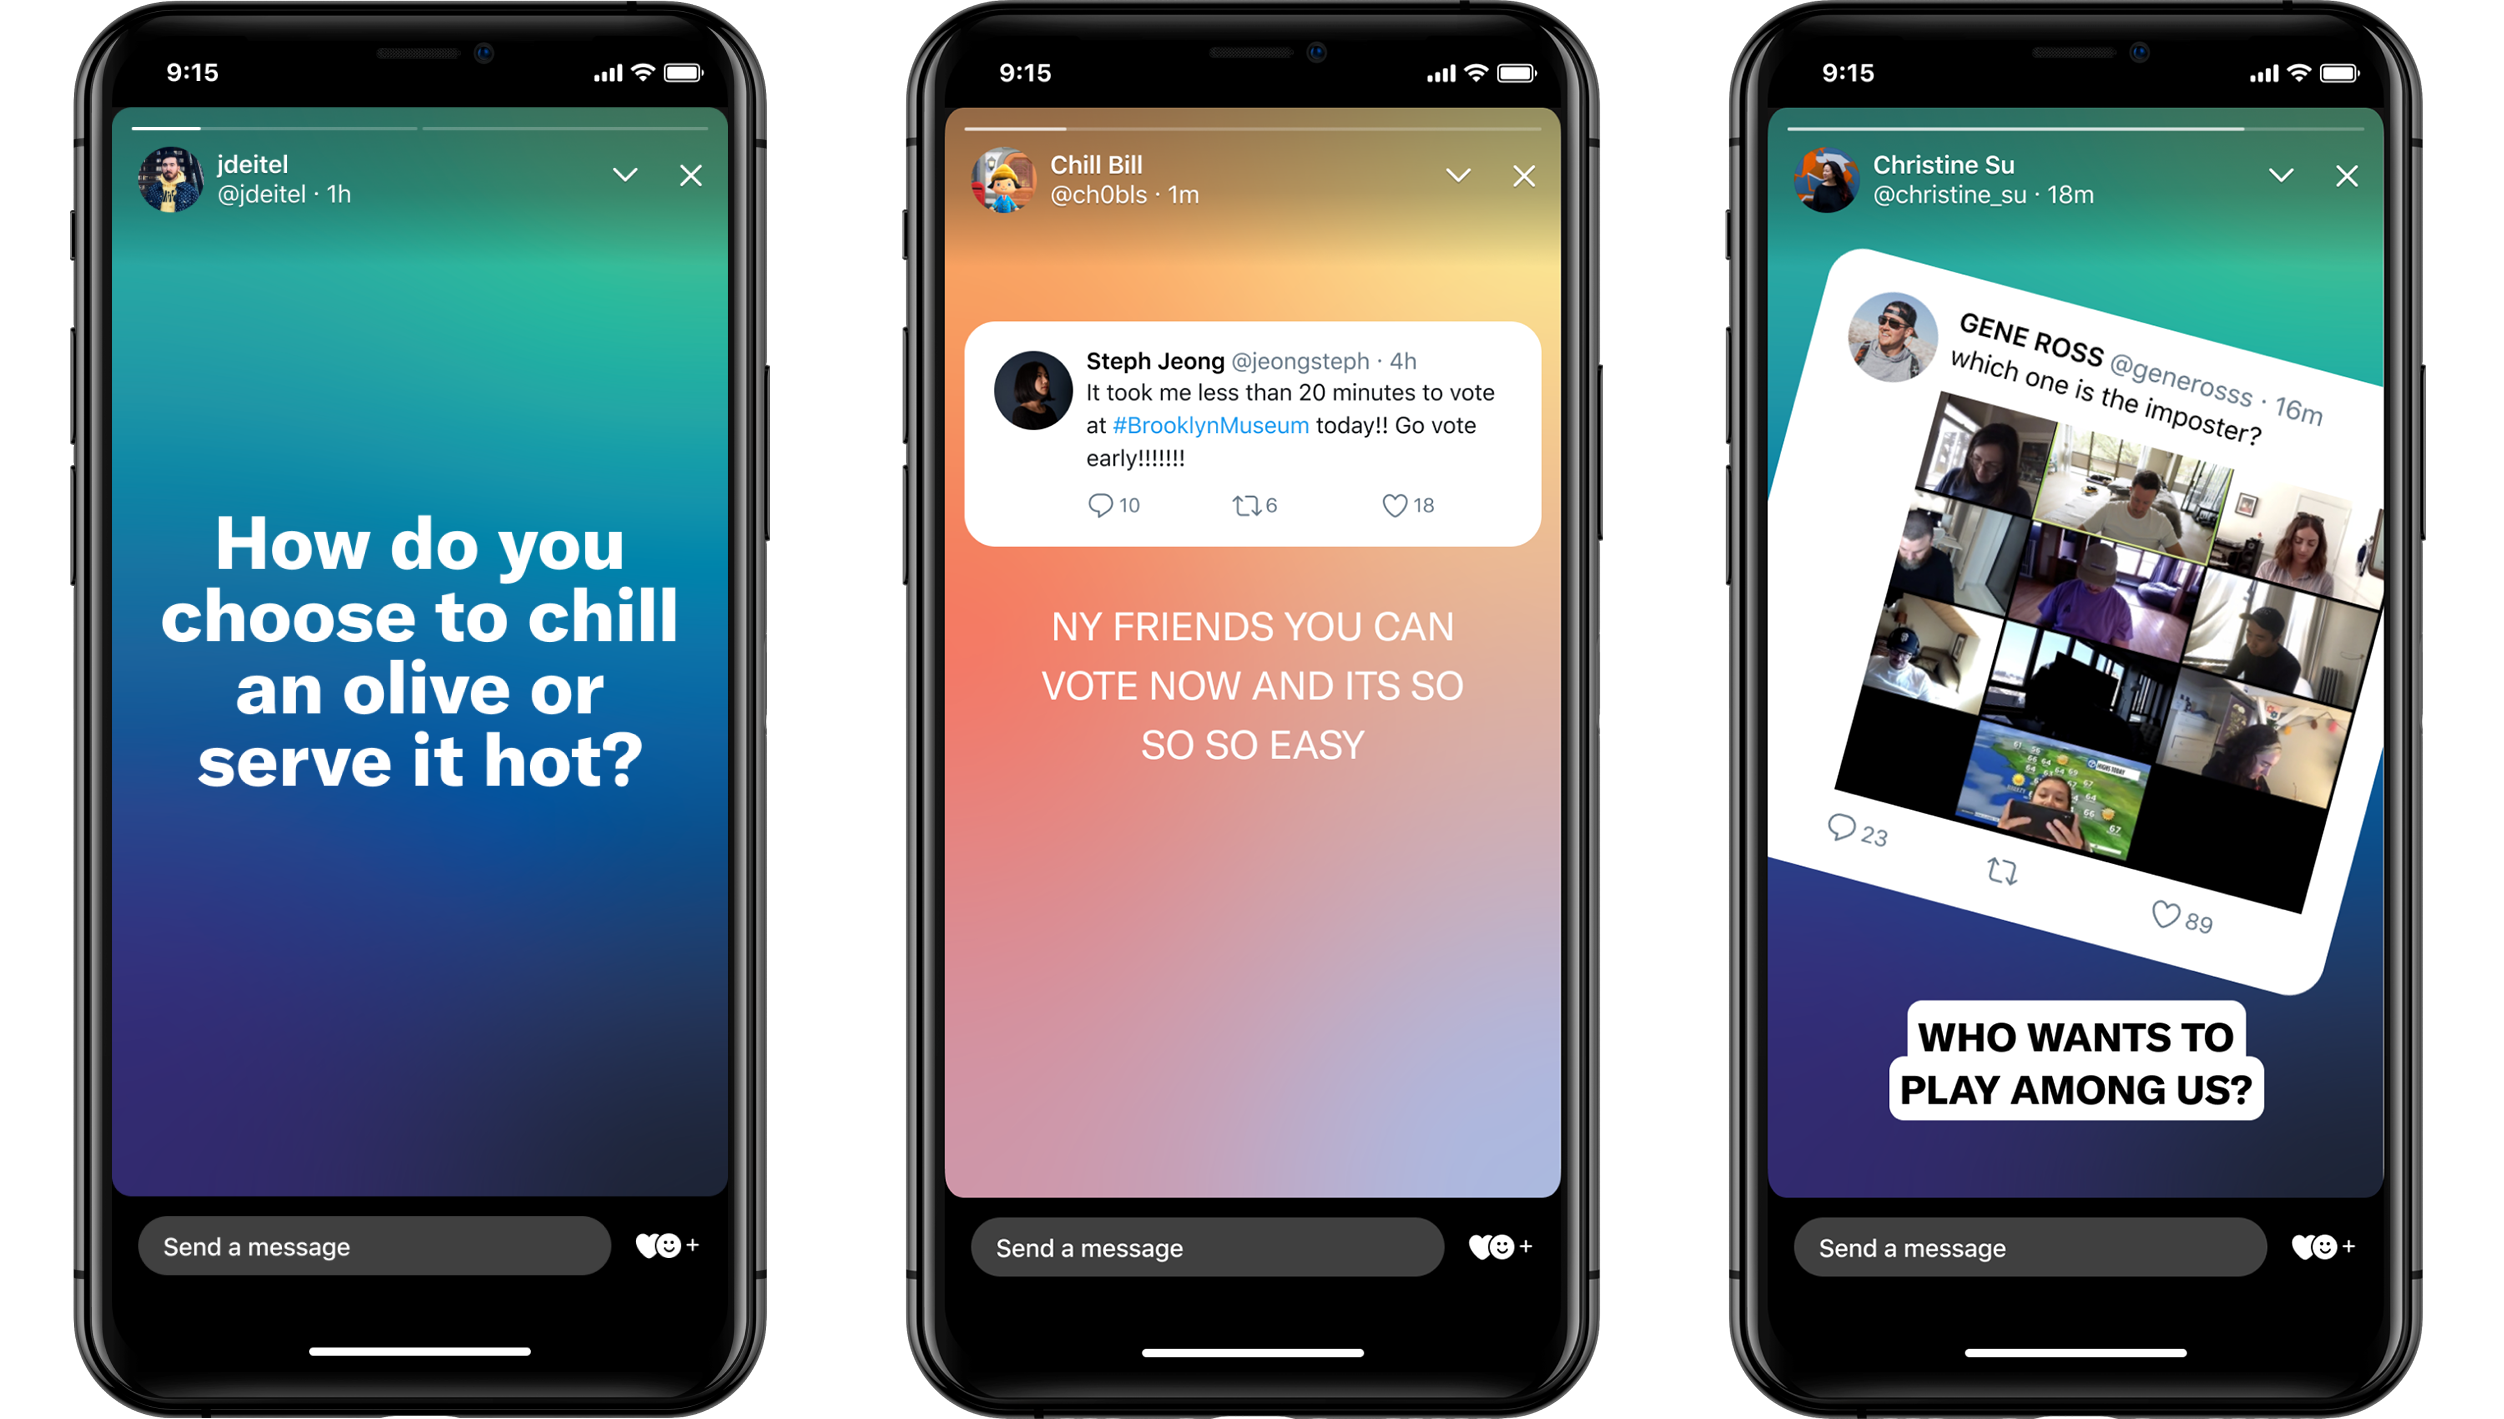 Twitter launches Fleets, a new feature for disappearing tweets rolling out for iOS and Android users starting Tuesday.